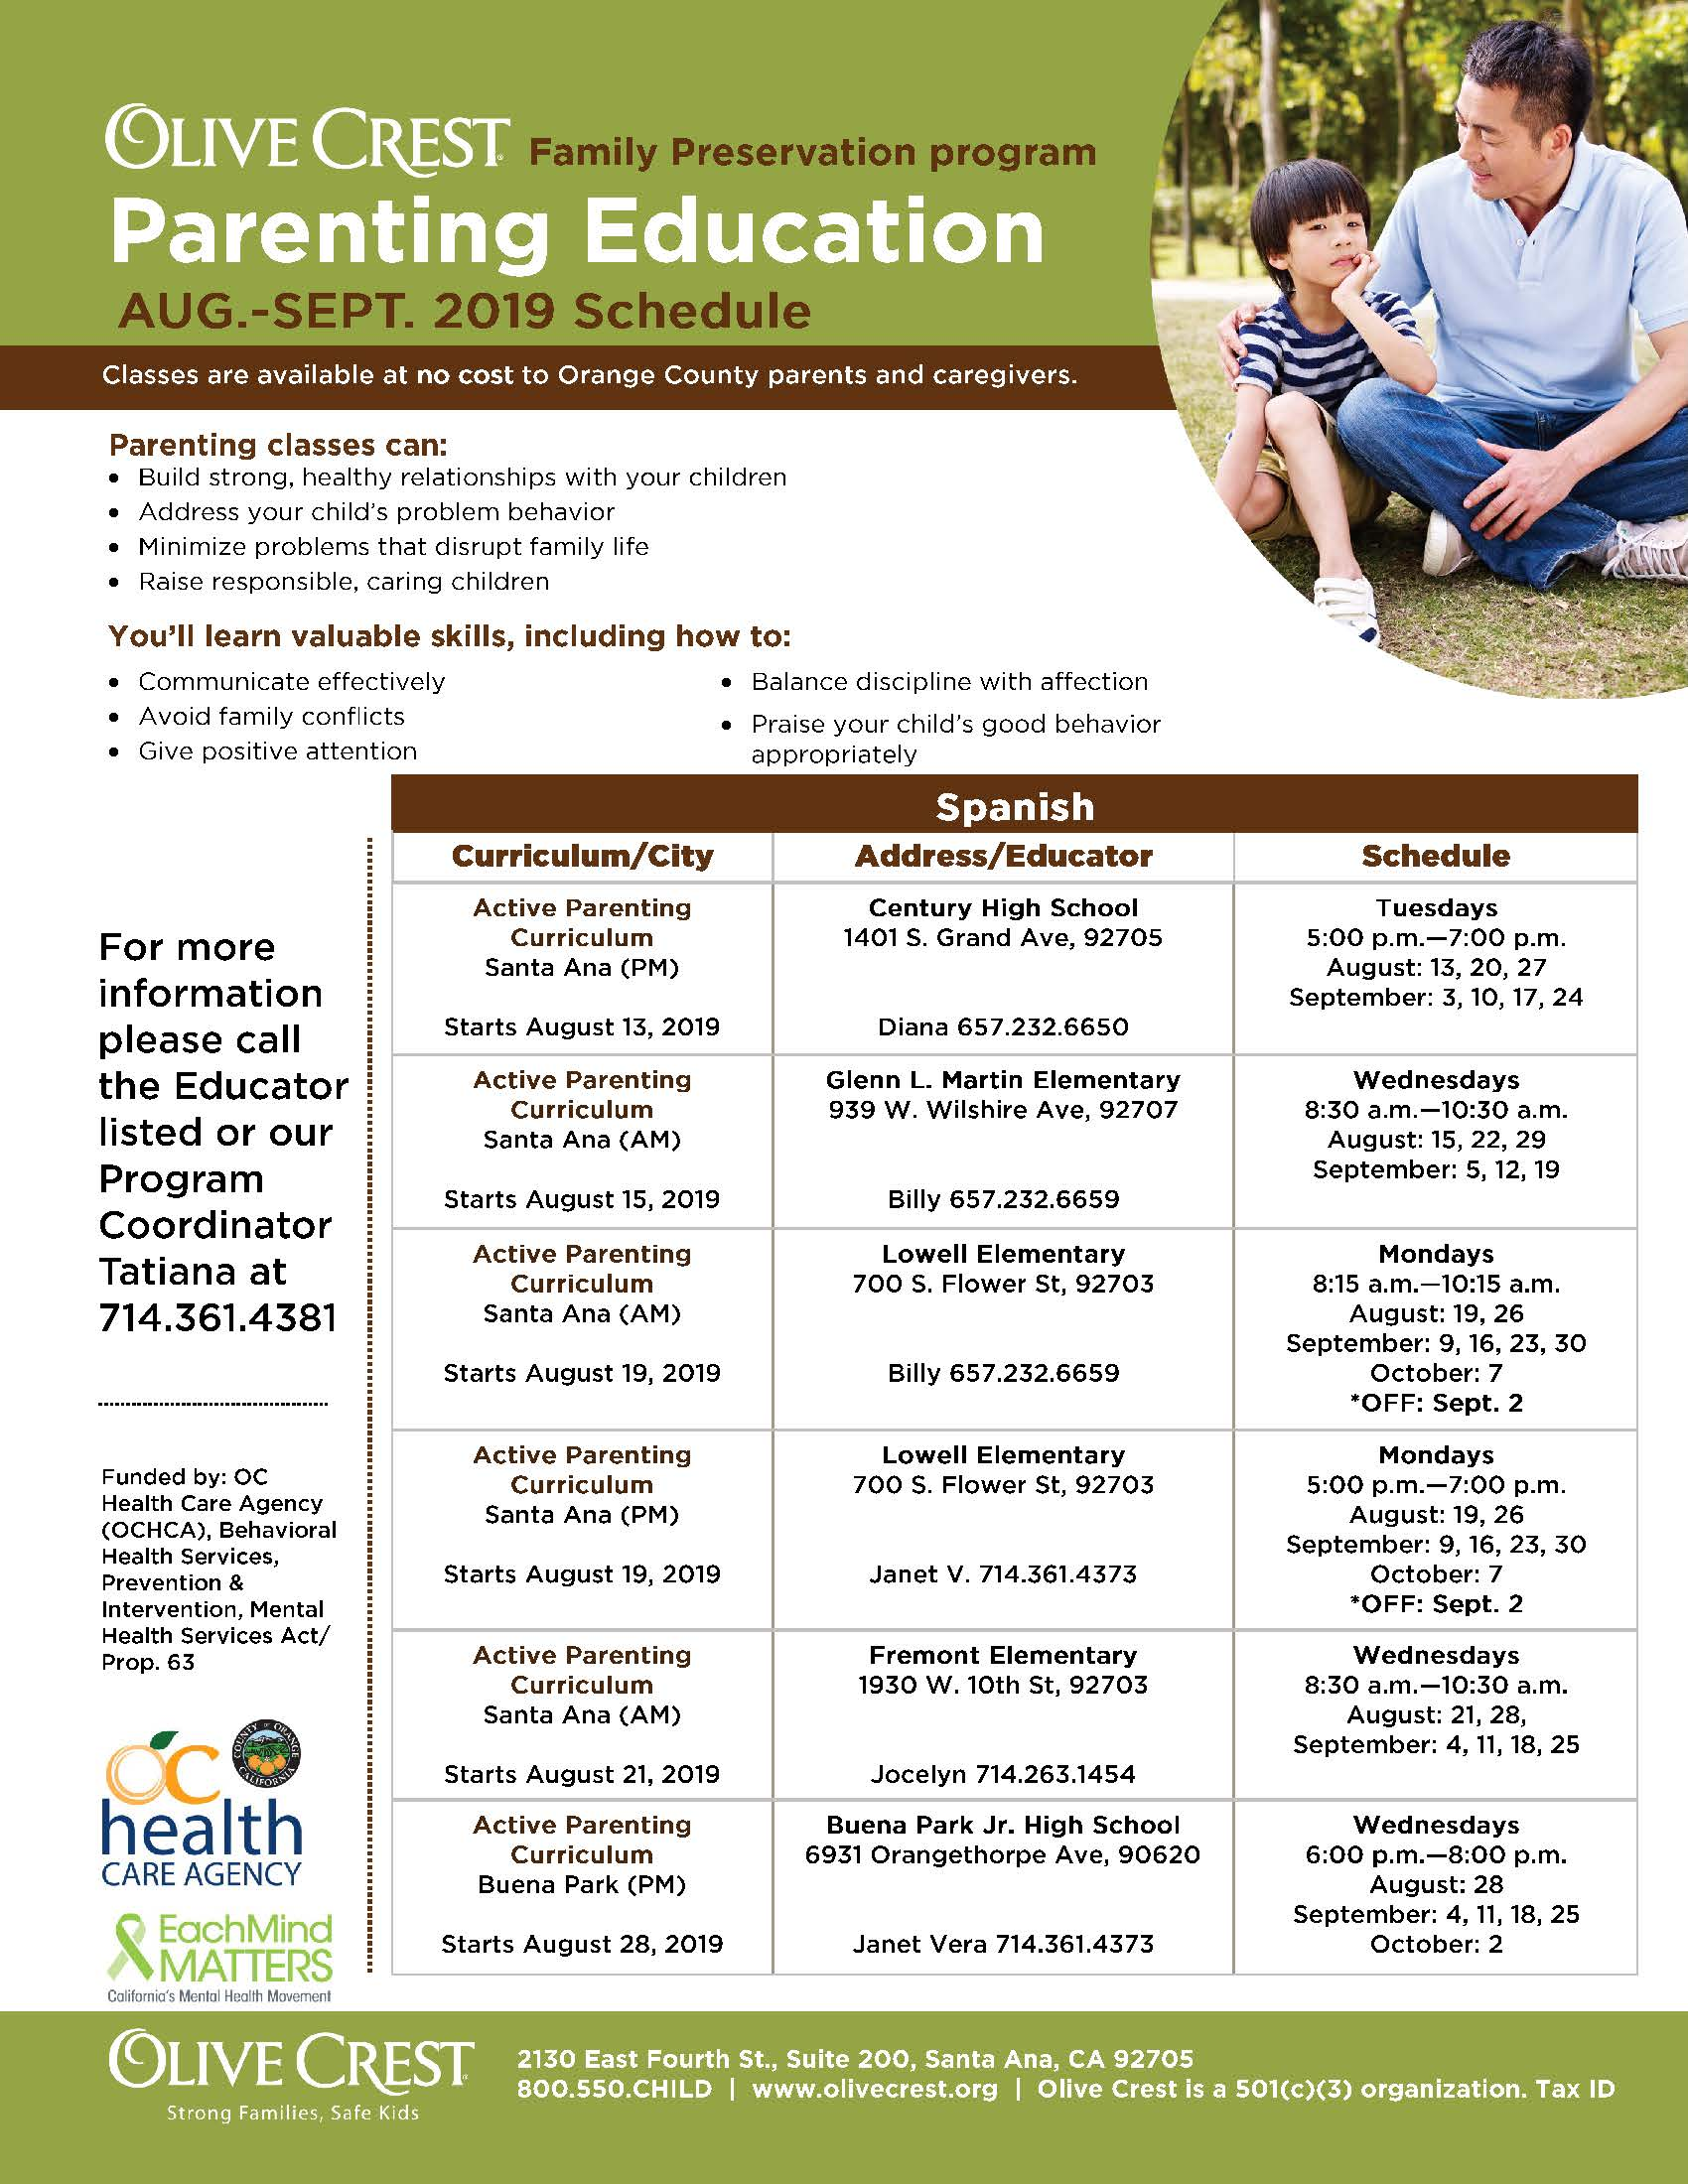 Olive Crest Parenting Ed AUGUST-SEPT Schedule_Page_1.jpg